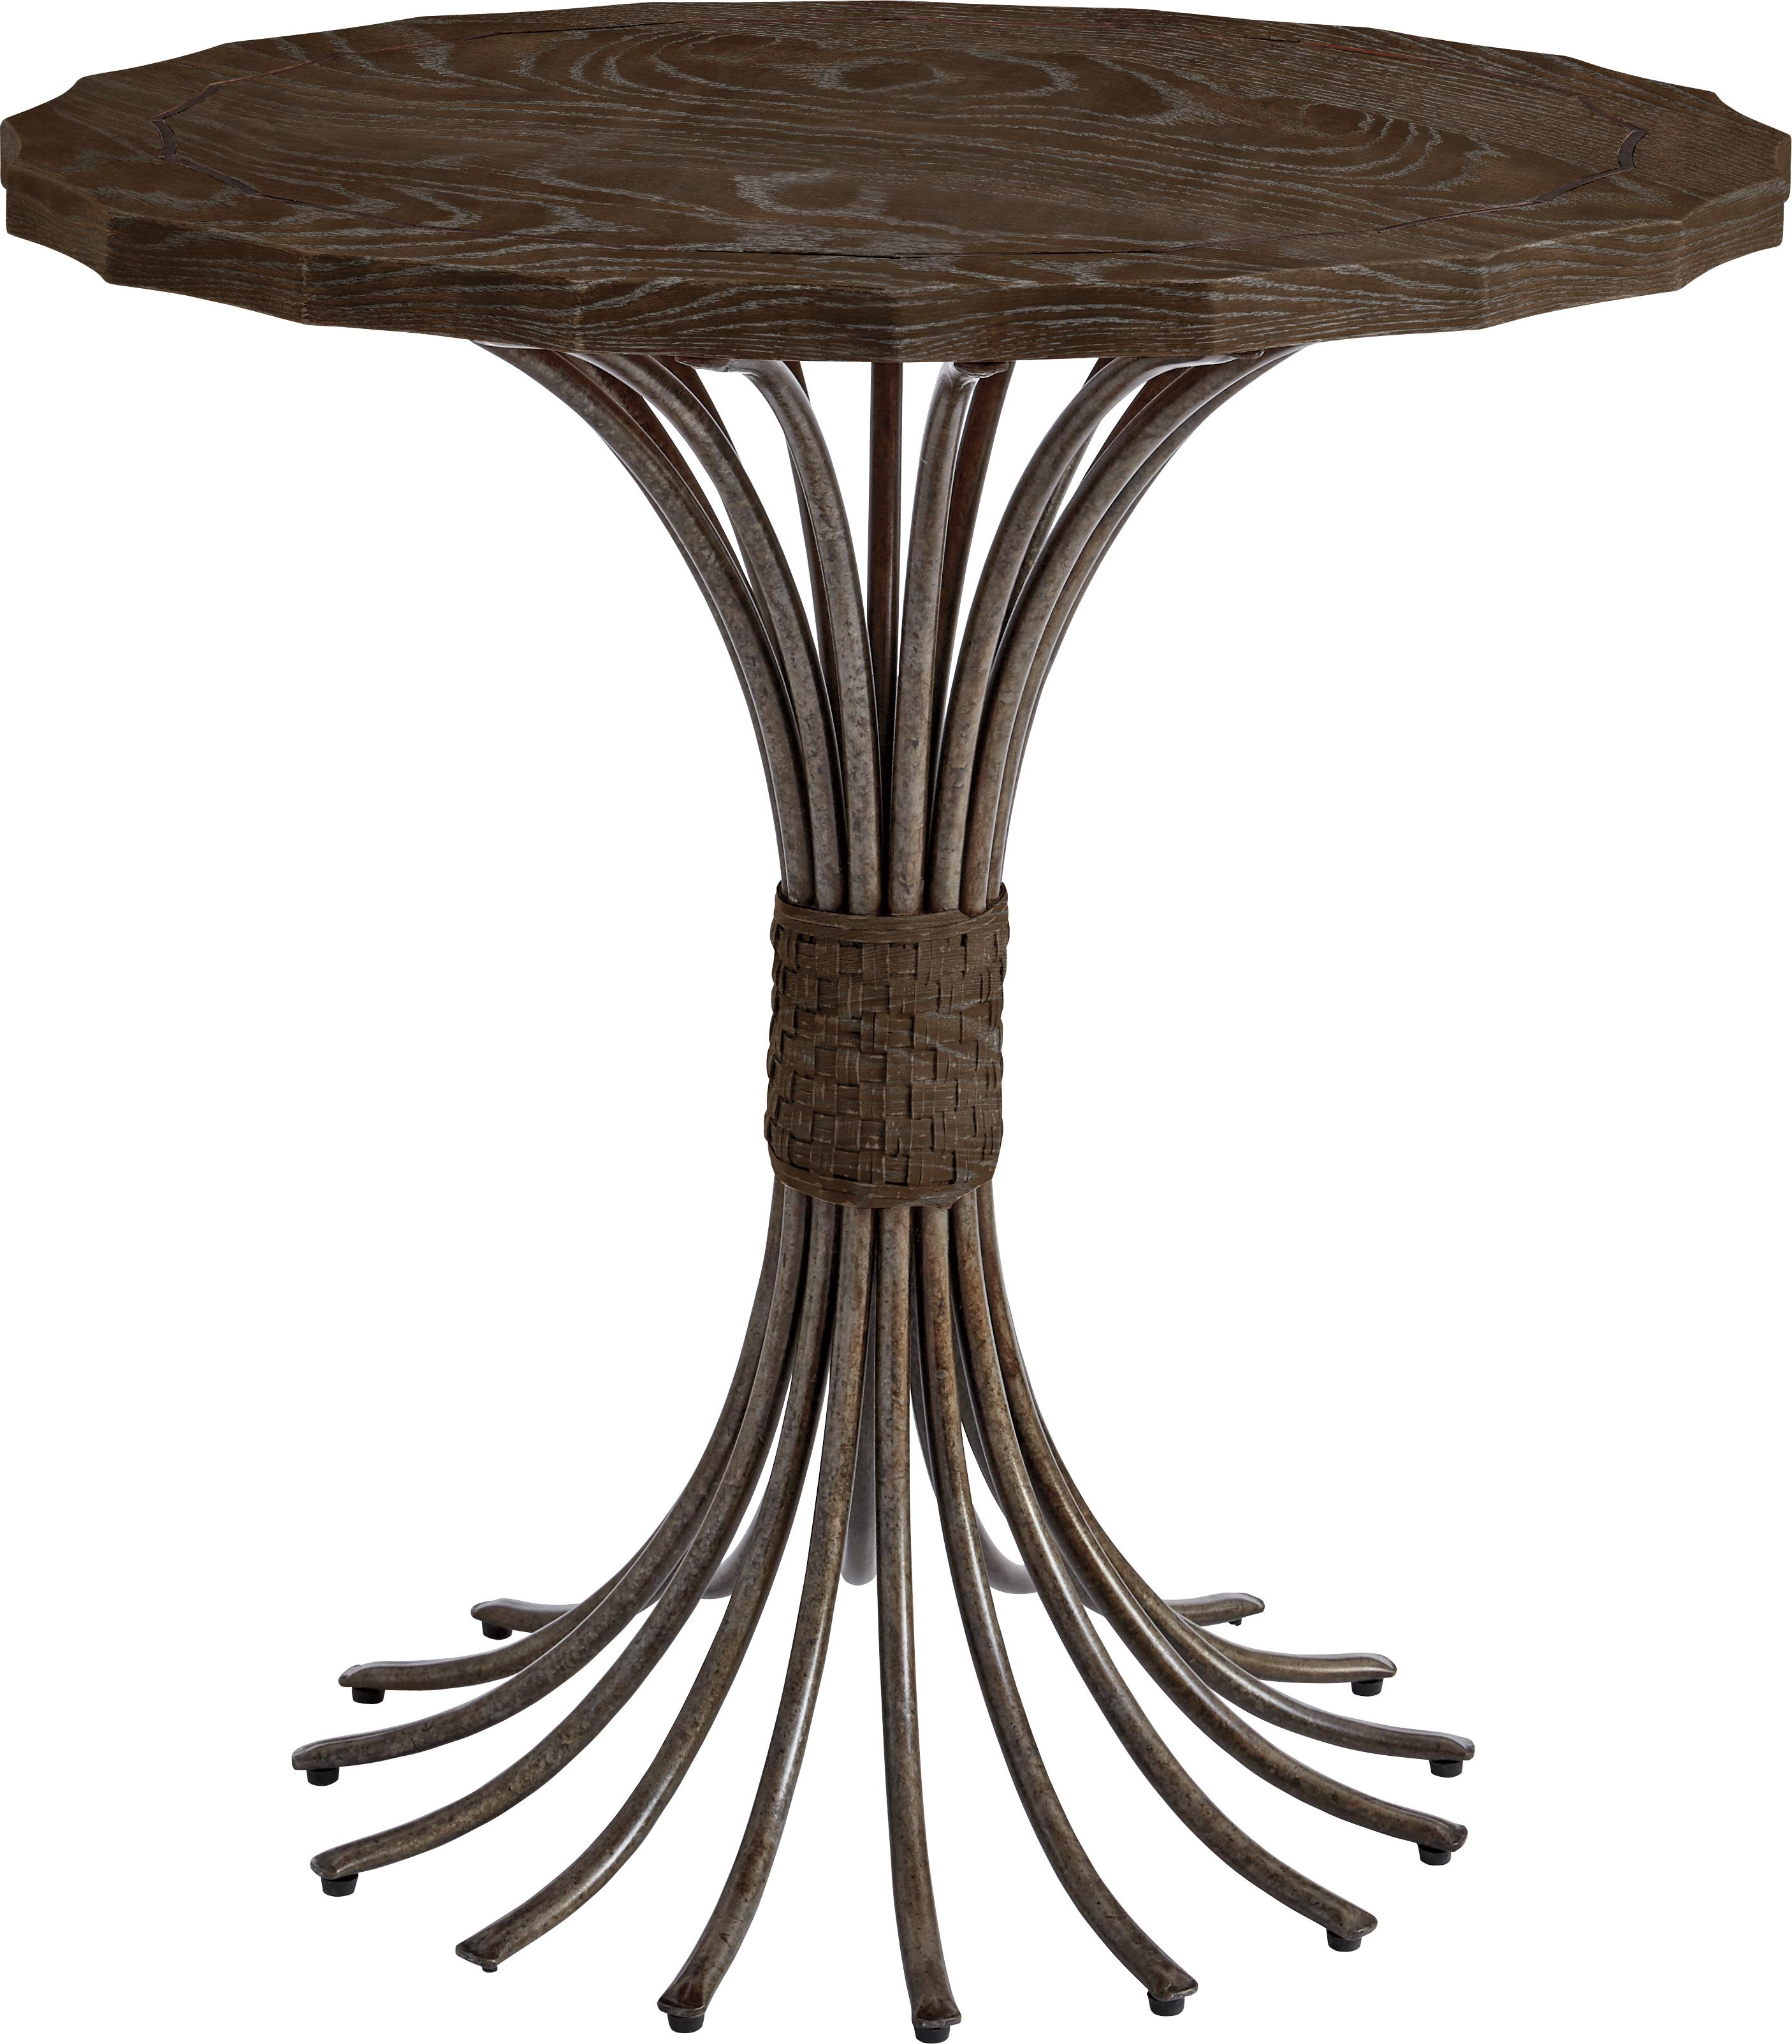 Stanley Furniture Coastal Living Resort Eddy's Landing Lamp Table - Item Number: 062-15-08